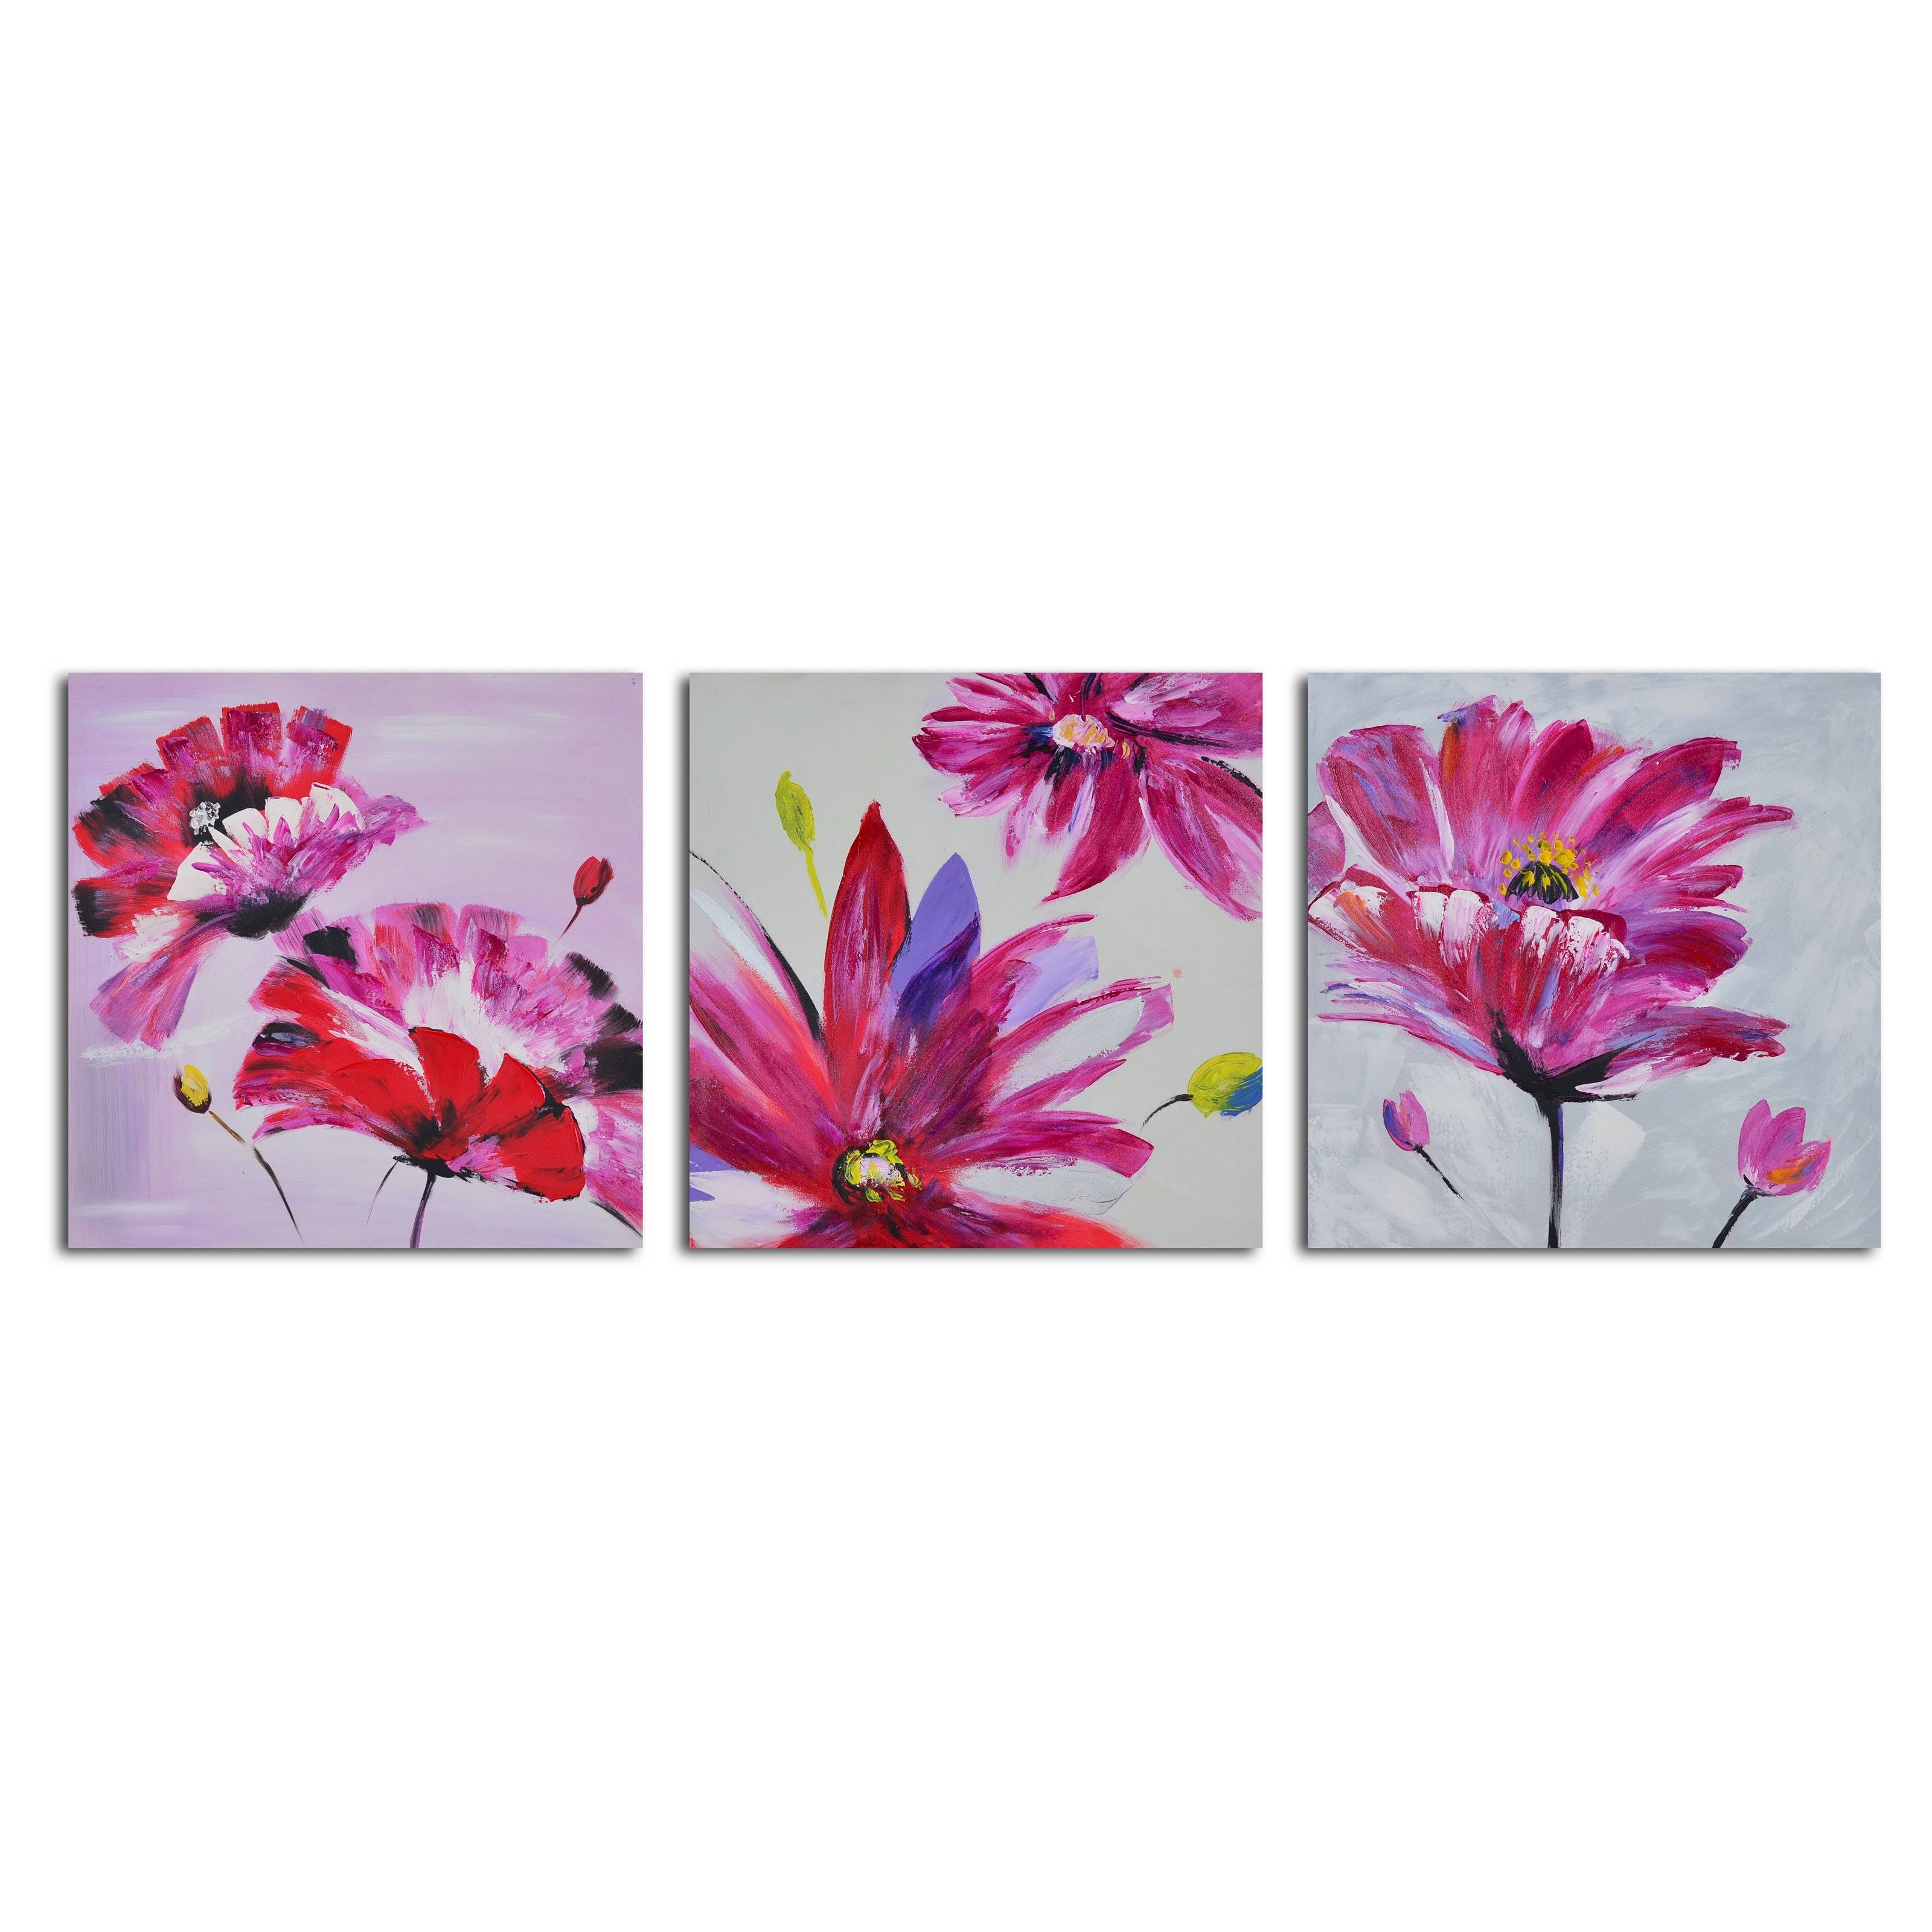 Frenzy Of Fuschia Florals 3 Piece Canvas Wall Art Set | Hayneedle With Latest Canvas Wall Art 3 Piece Sets (View 16 of 20)